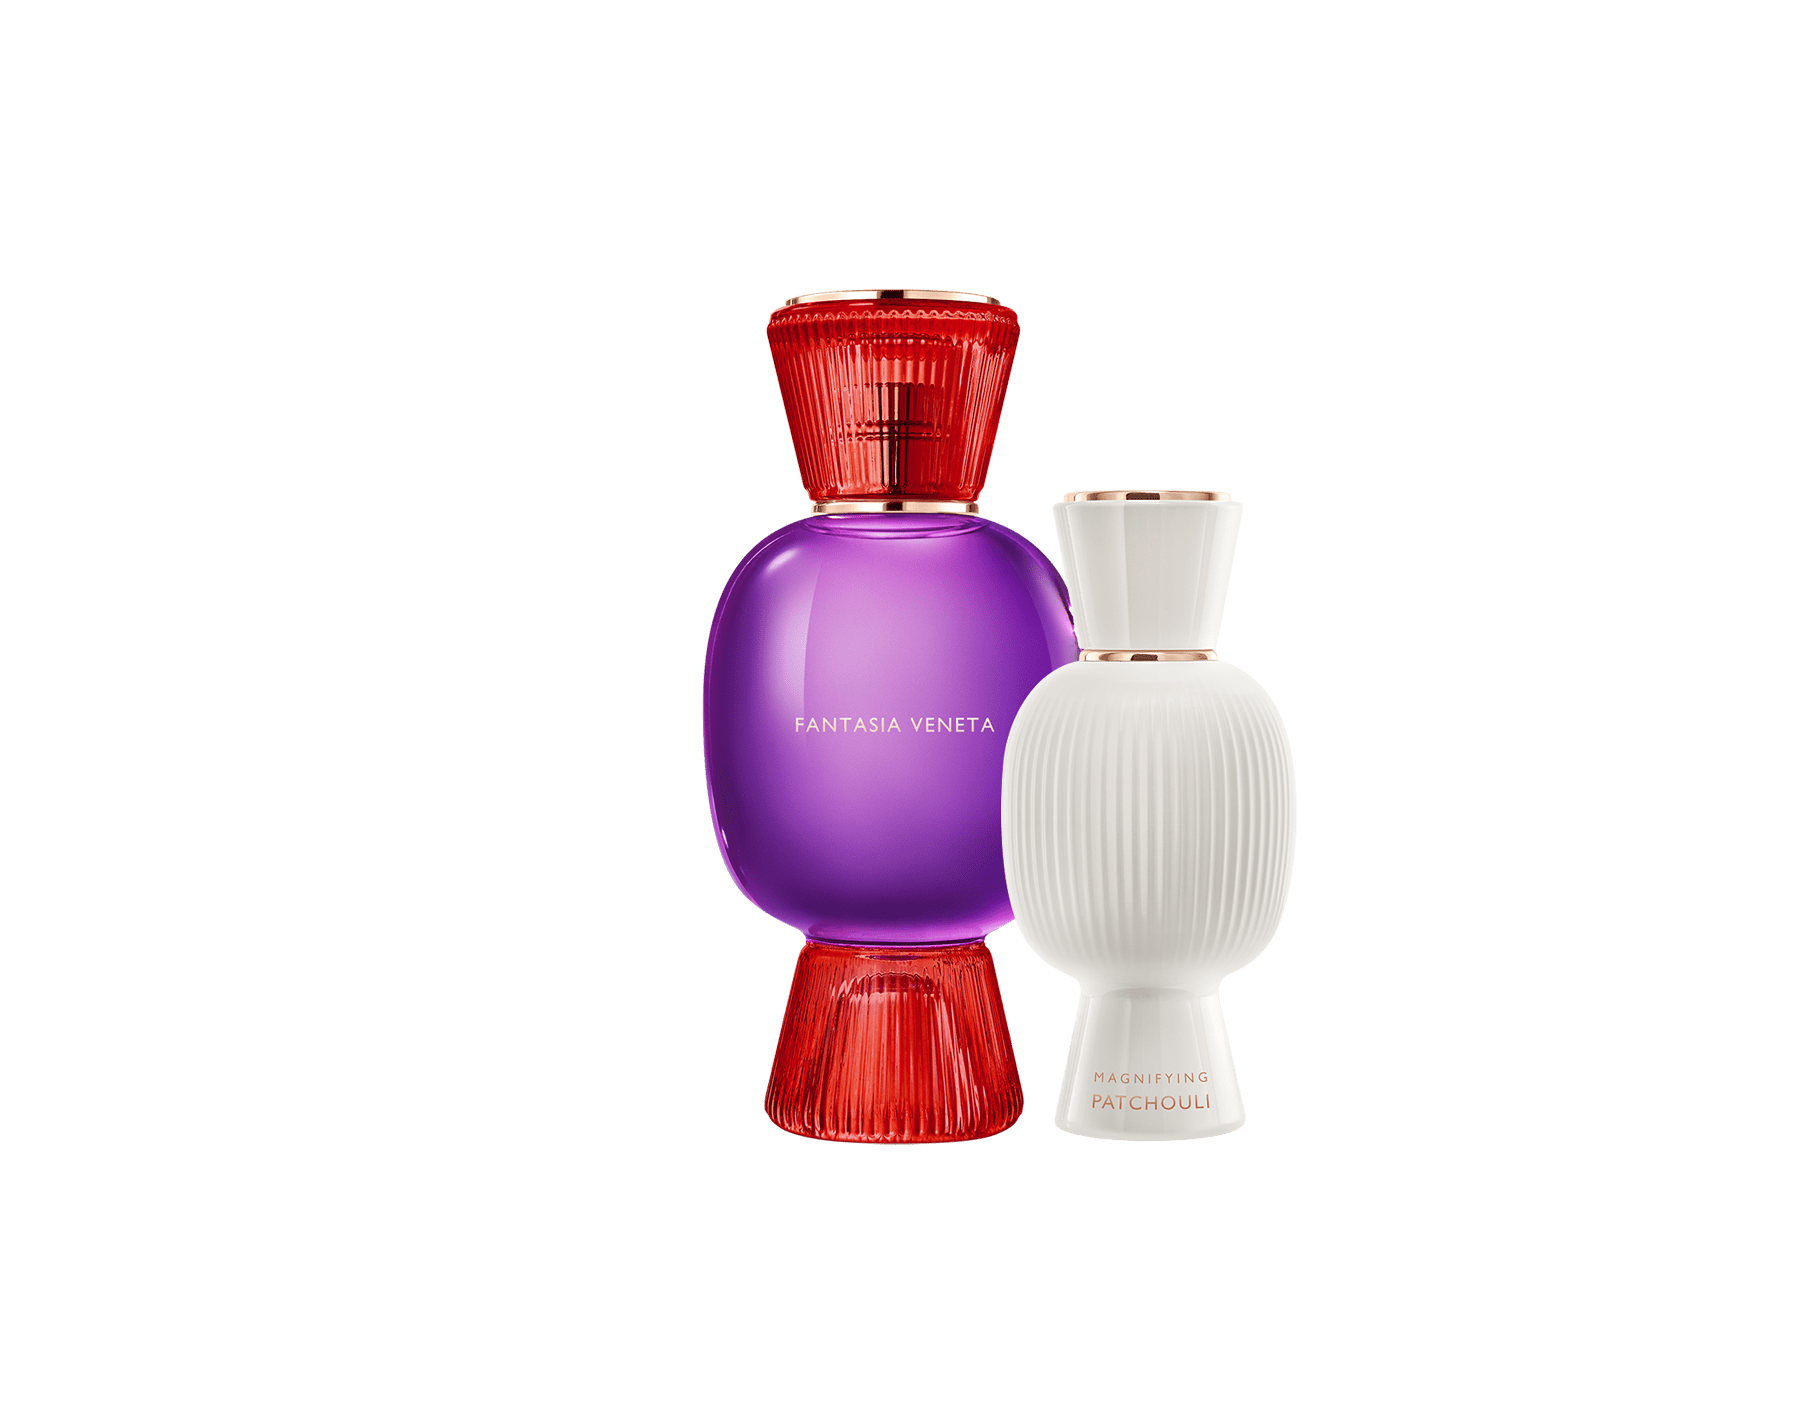 An exclusive perfume set, as bold and unique as you. The festive chypre Fantasia Veneta Allegra Eau de Parfum blends with the stark sensuality of the Magnifying Patchouli Essence, creating an irresistible personalised women's perfume. Perfume-Set-Fantasia-Veneta-Eau-de-Parfum-and-Patchouli-Magnifying image 1